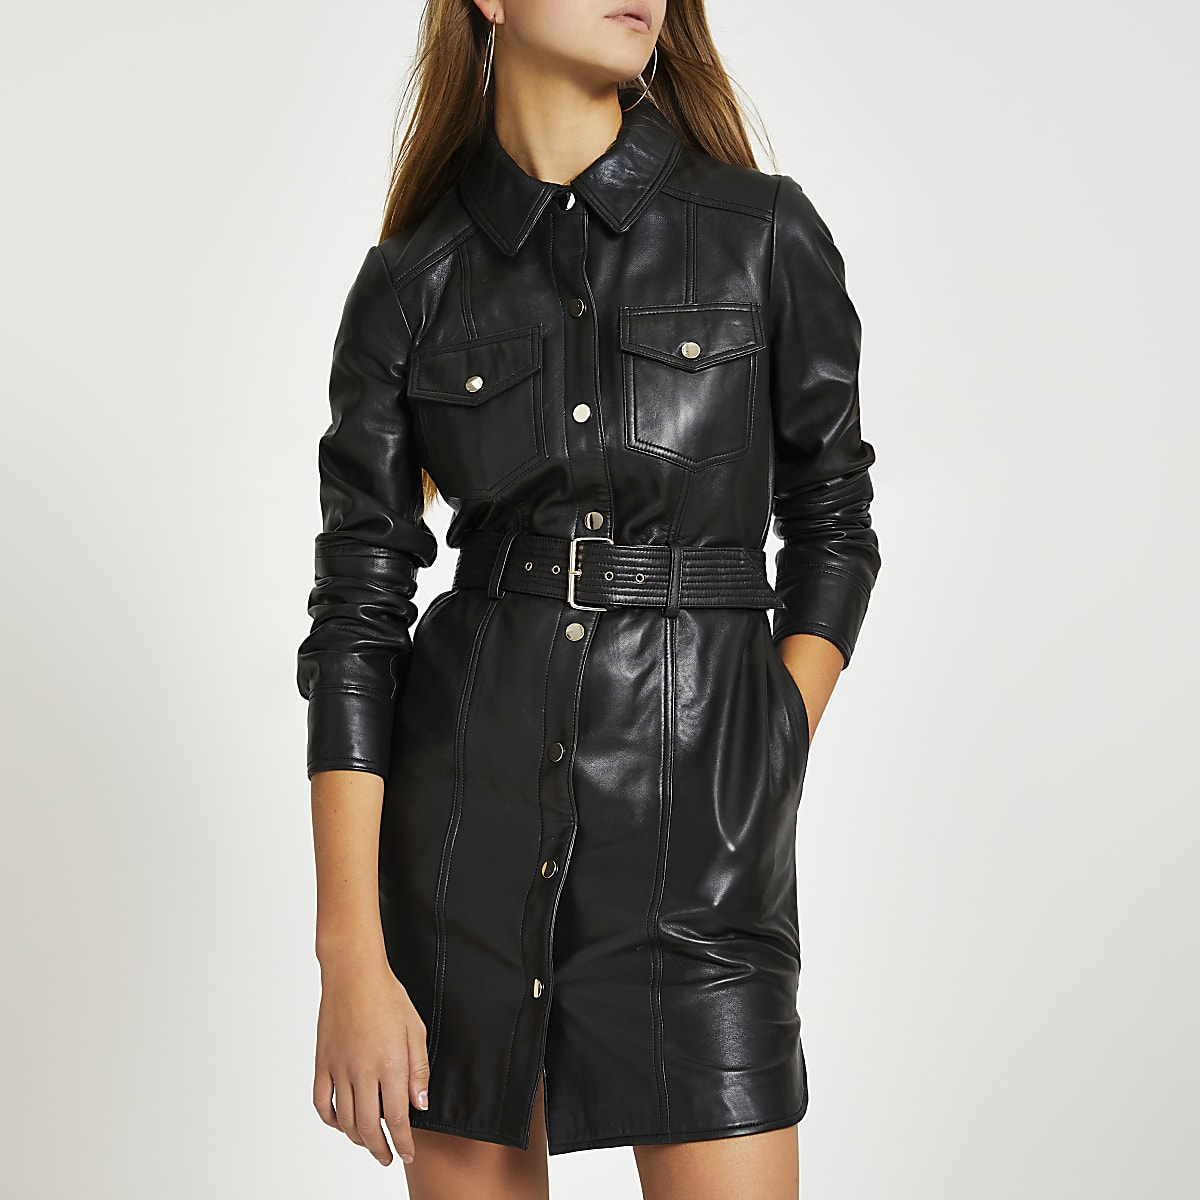 acheter populaire ef6ea 5b36b Black leather long sleeve shirt dress